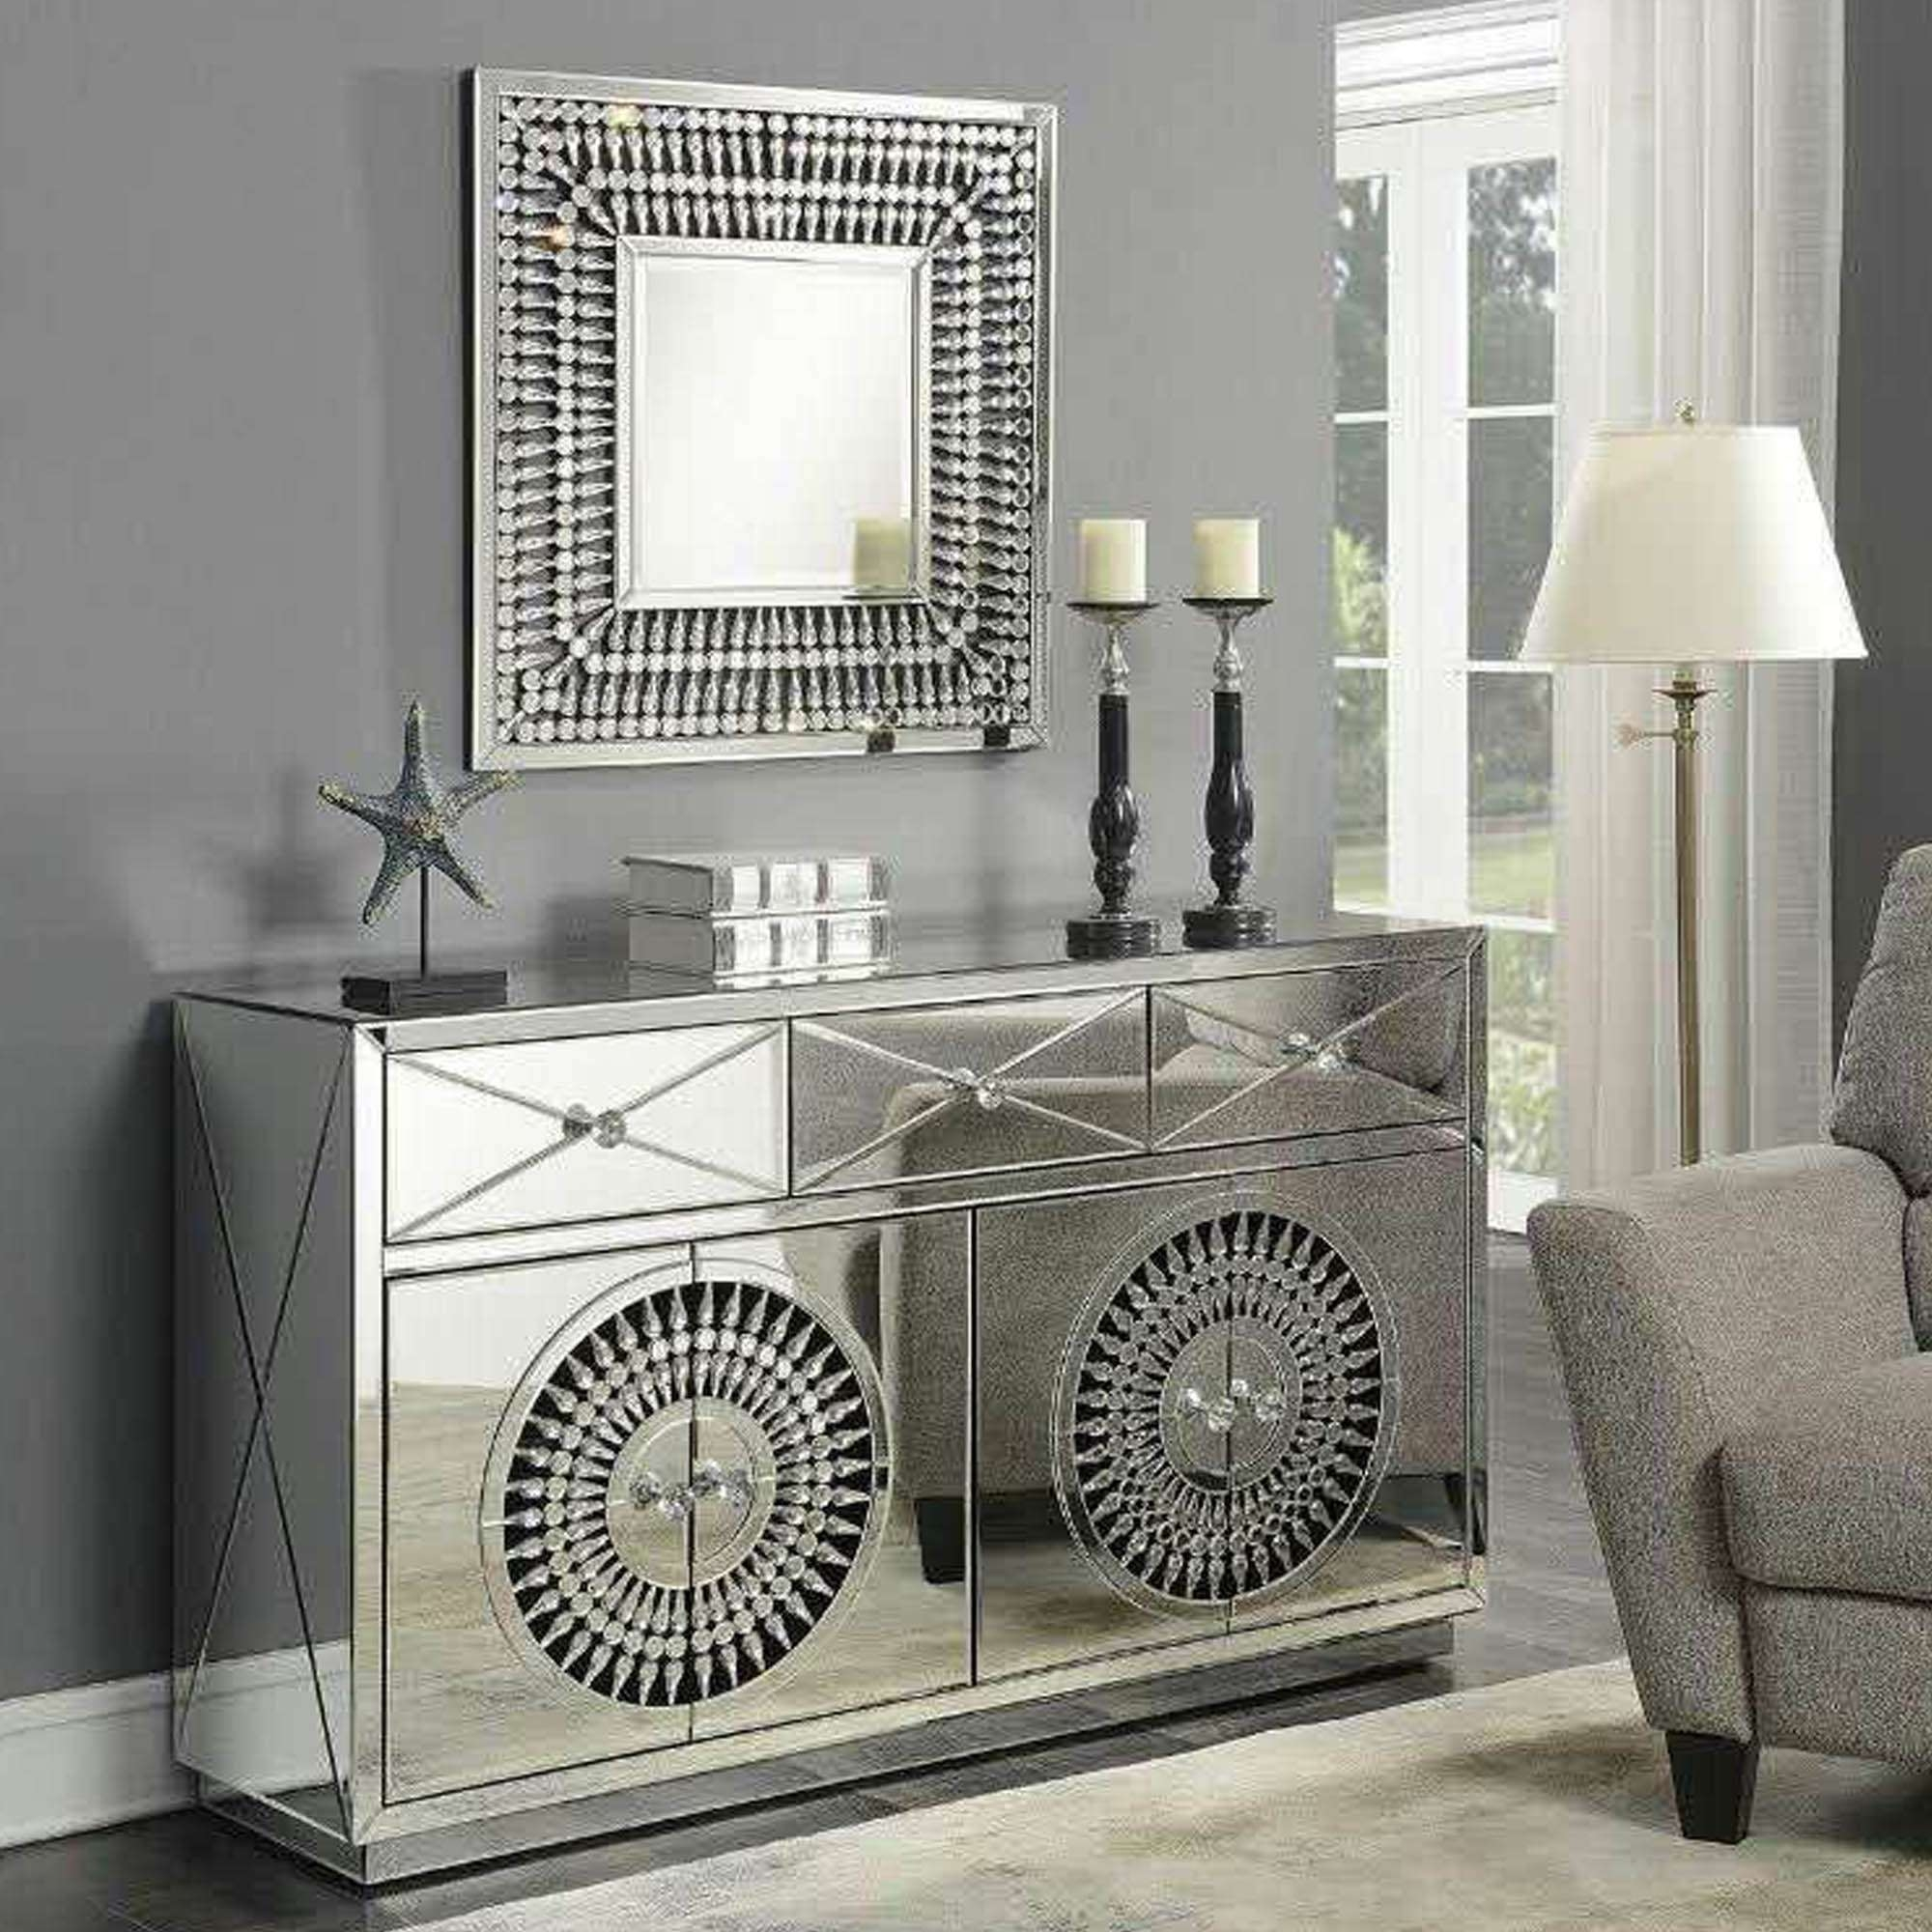 Crystal Mirrored Sideboard | Sideboard | Homesdirect365 Inside Mirrored Sideboards (View 4 of 20)